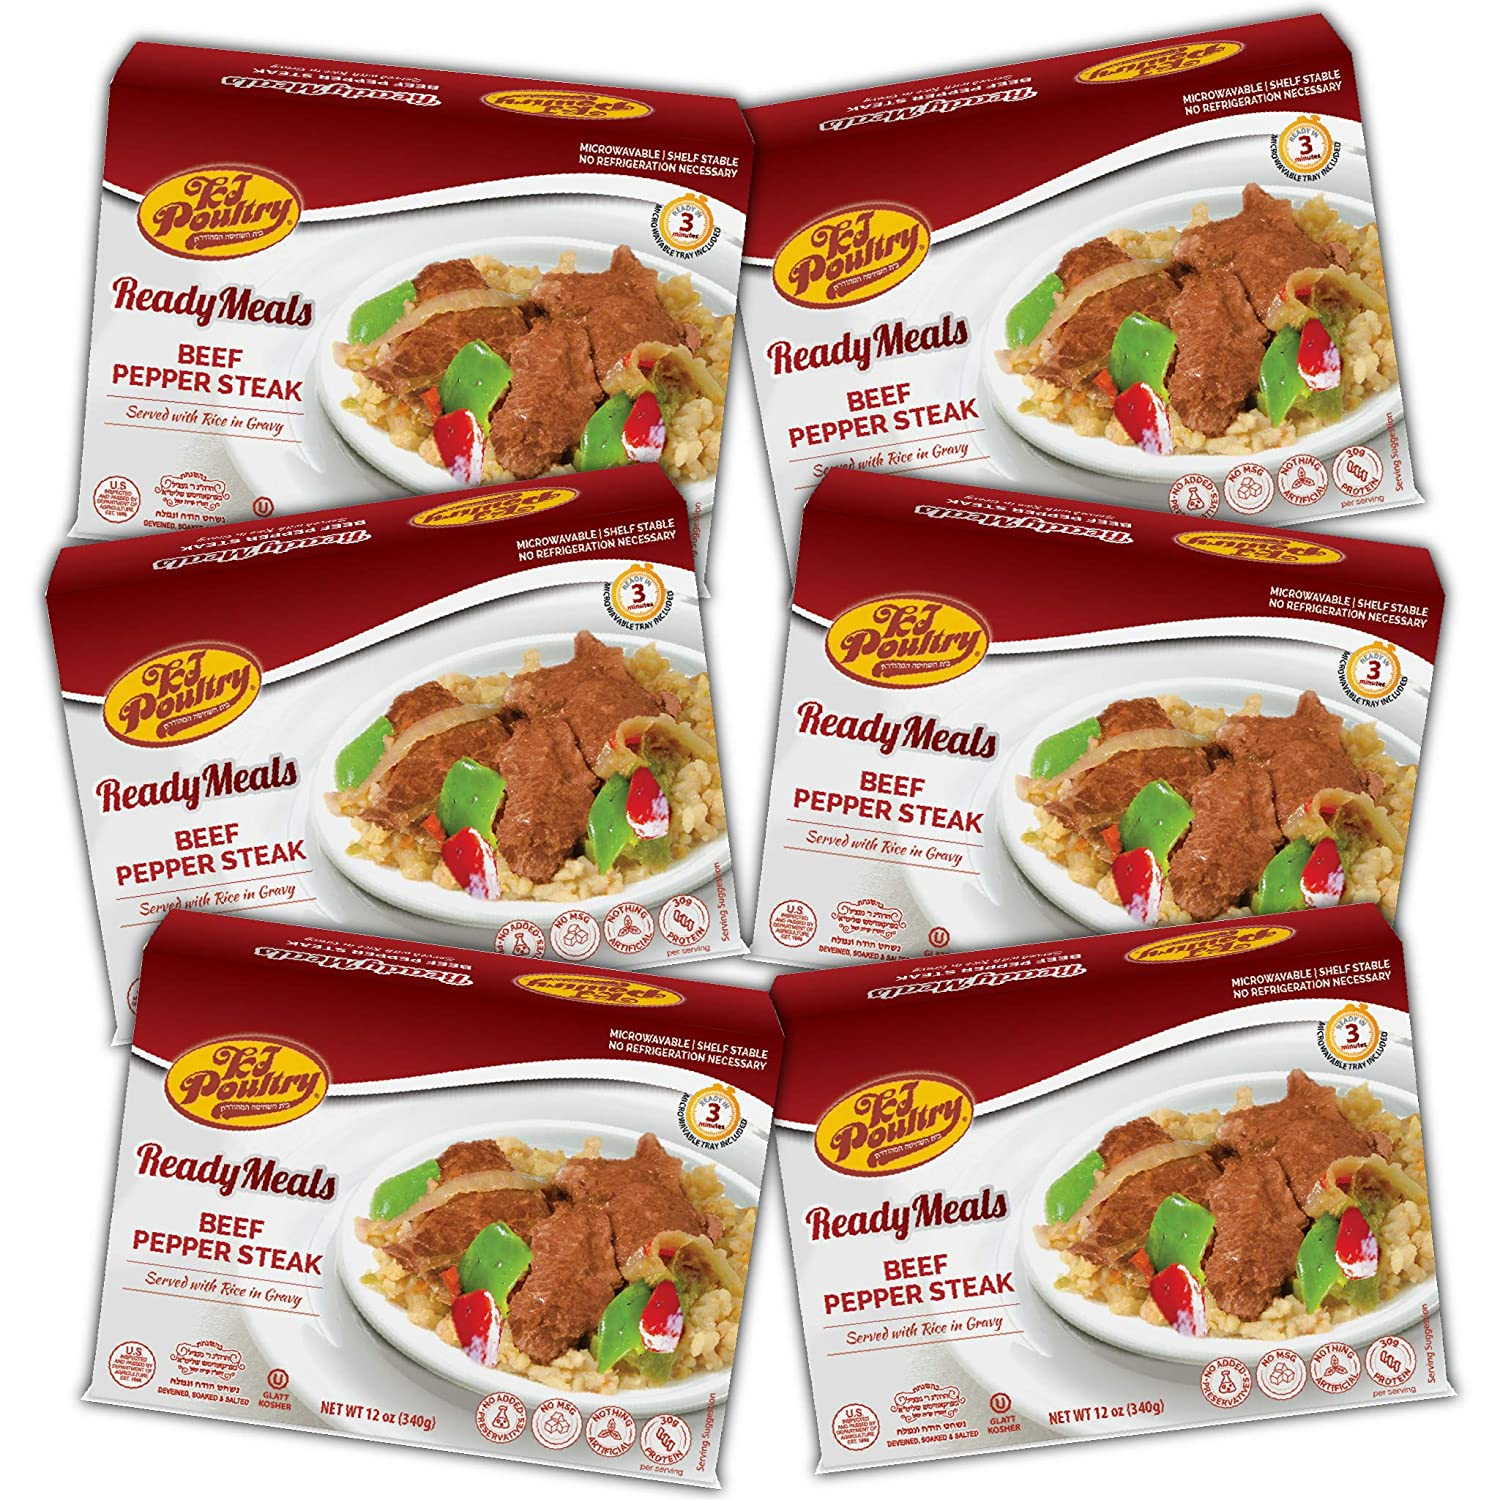 Kosher Mre Meat Meals Ready to Eat, Beef Pepper Steak (6 Pack) - Prepared Entree Fully Cooked, Shelf Stable Microwave Dinner, Deliverd Home – Travel, Military, Camping, Emergency Survival Canned Food